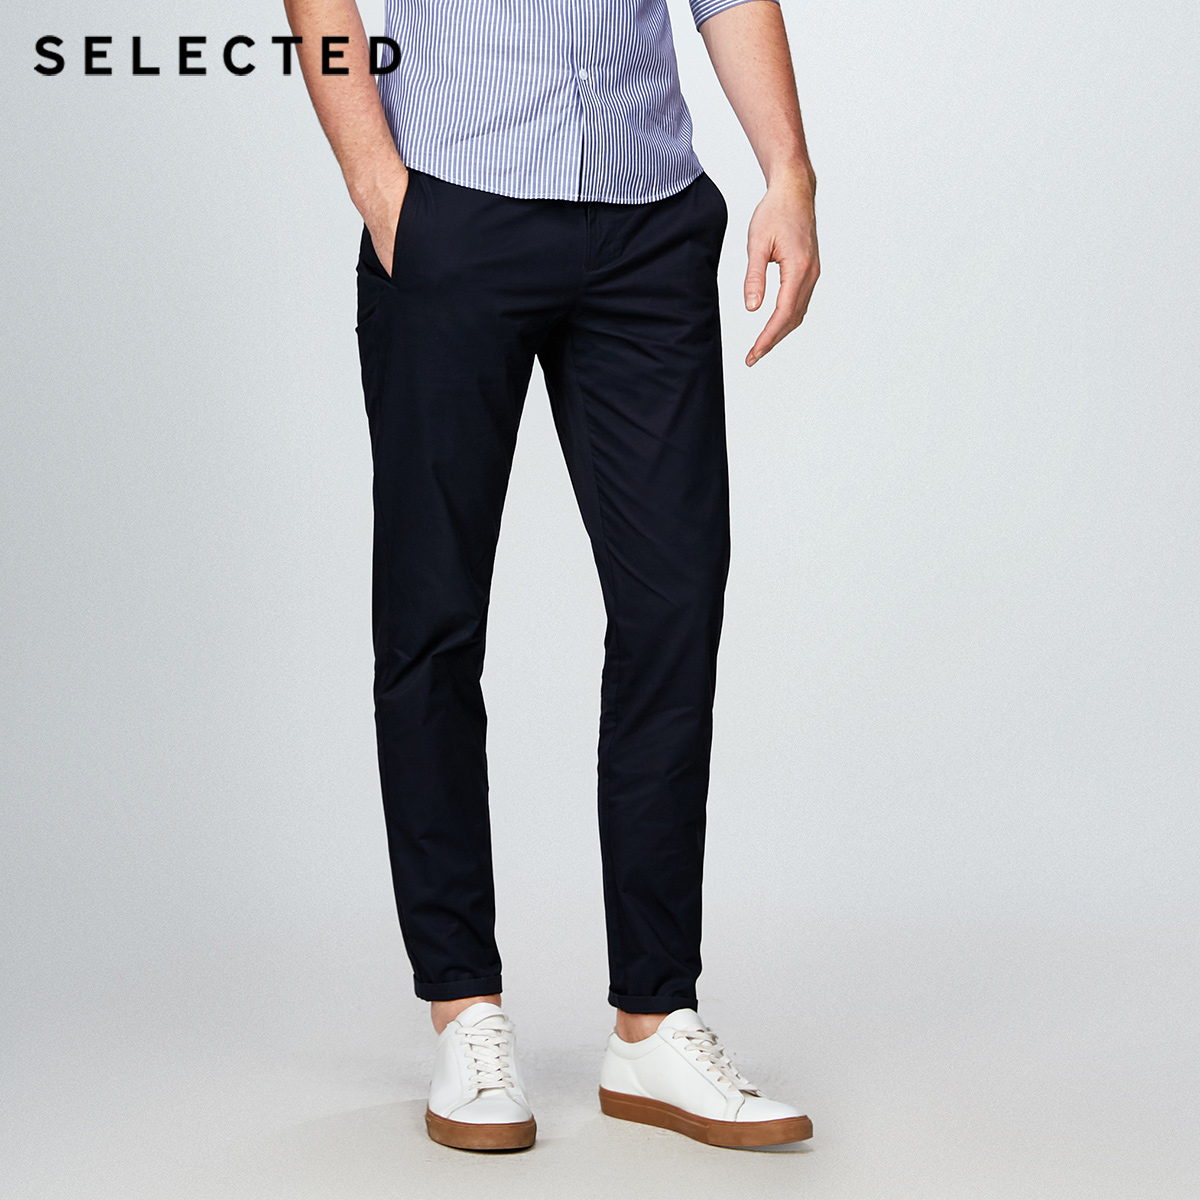 SELECTED  cotton business leisure straight leg long pants S4182W2511-in Casual Pants from Men's Clothing